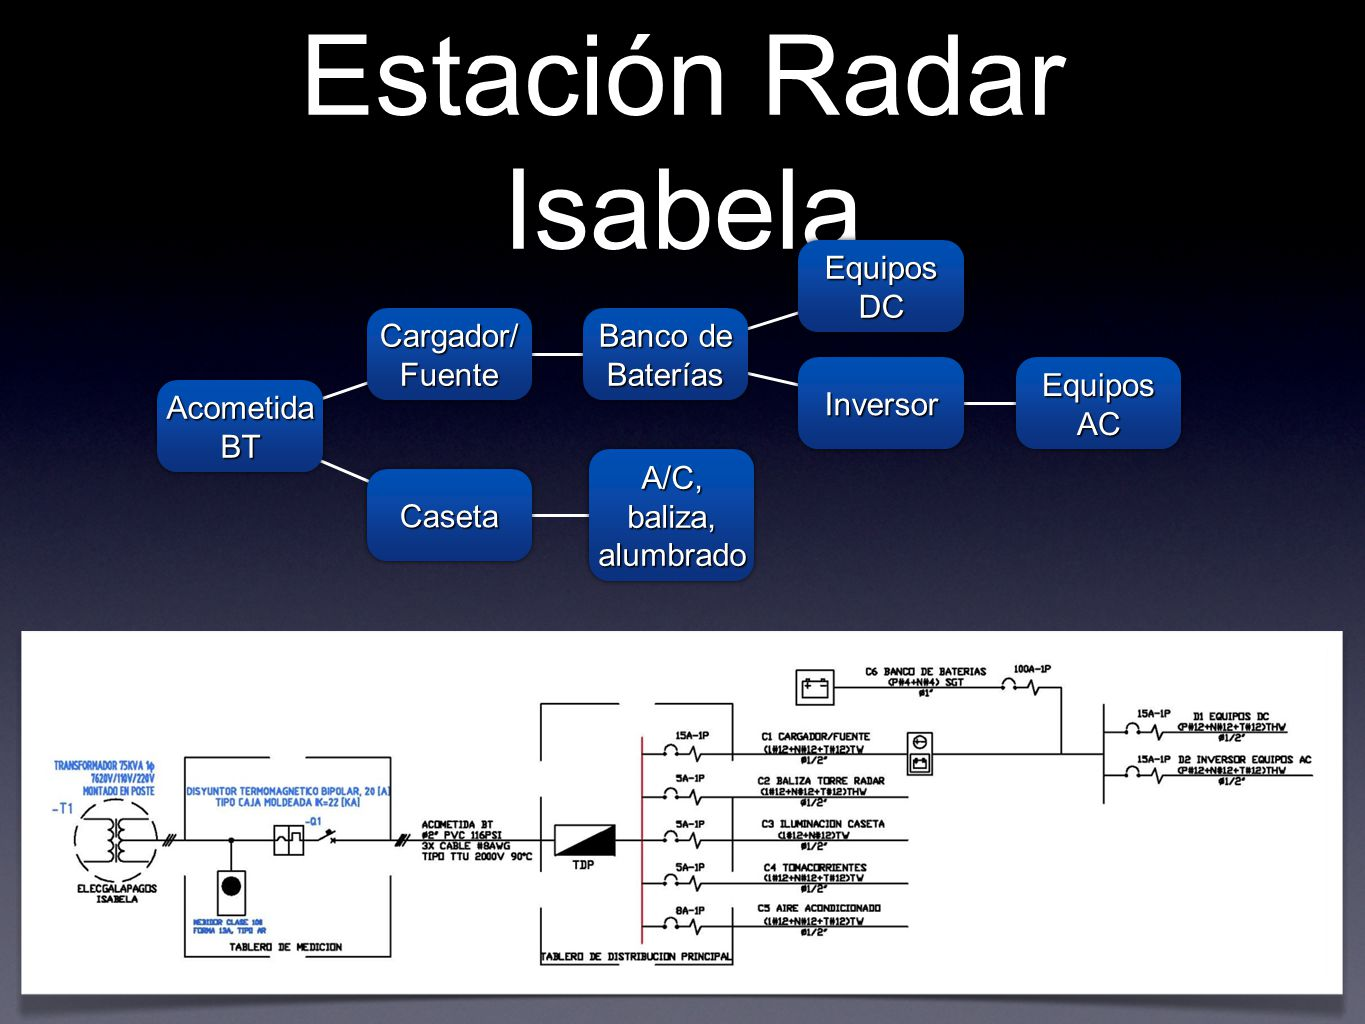 Estación Radar Isabela